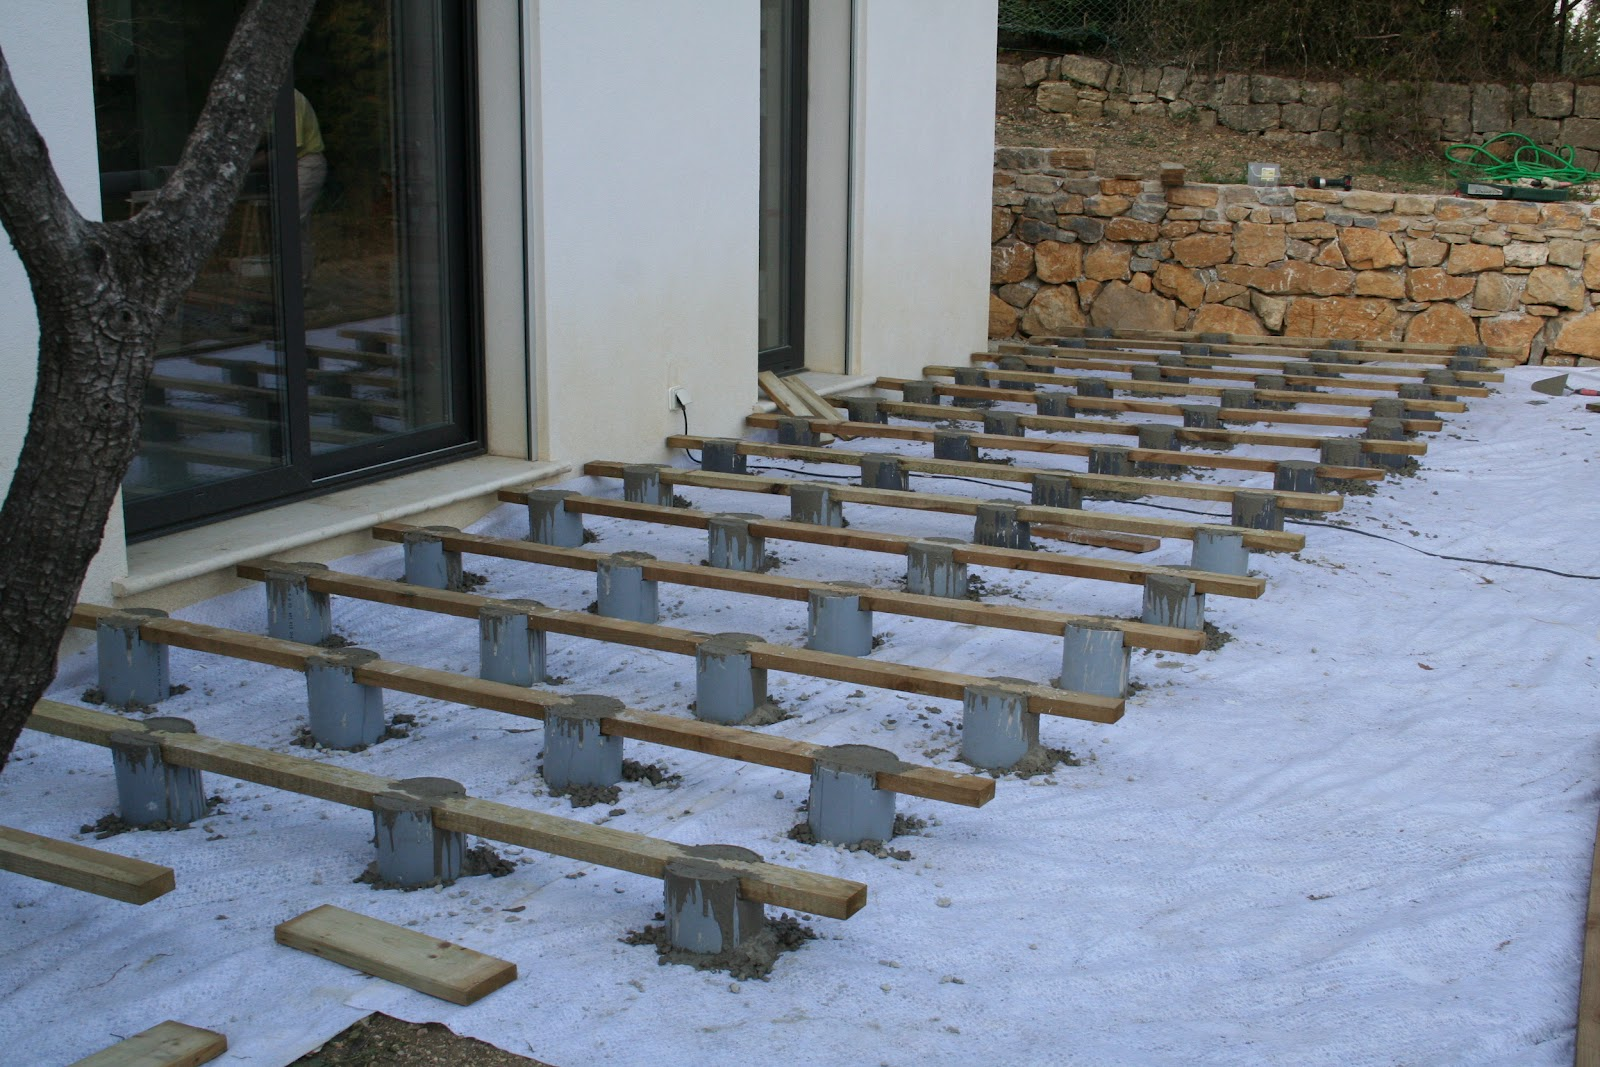 Construction terrasse en bois sur plot beton for Plot pour dalle beton